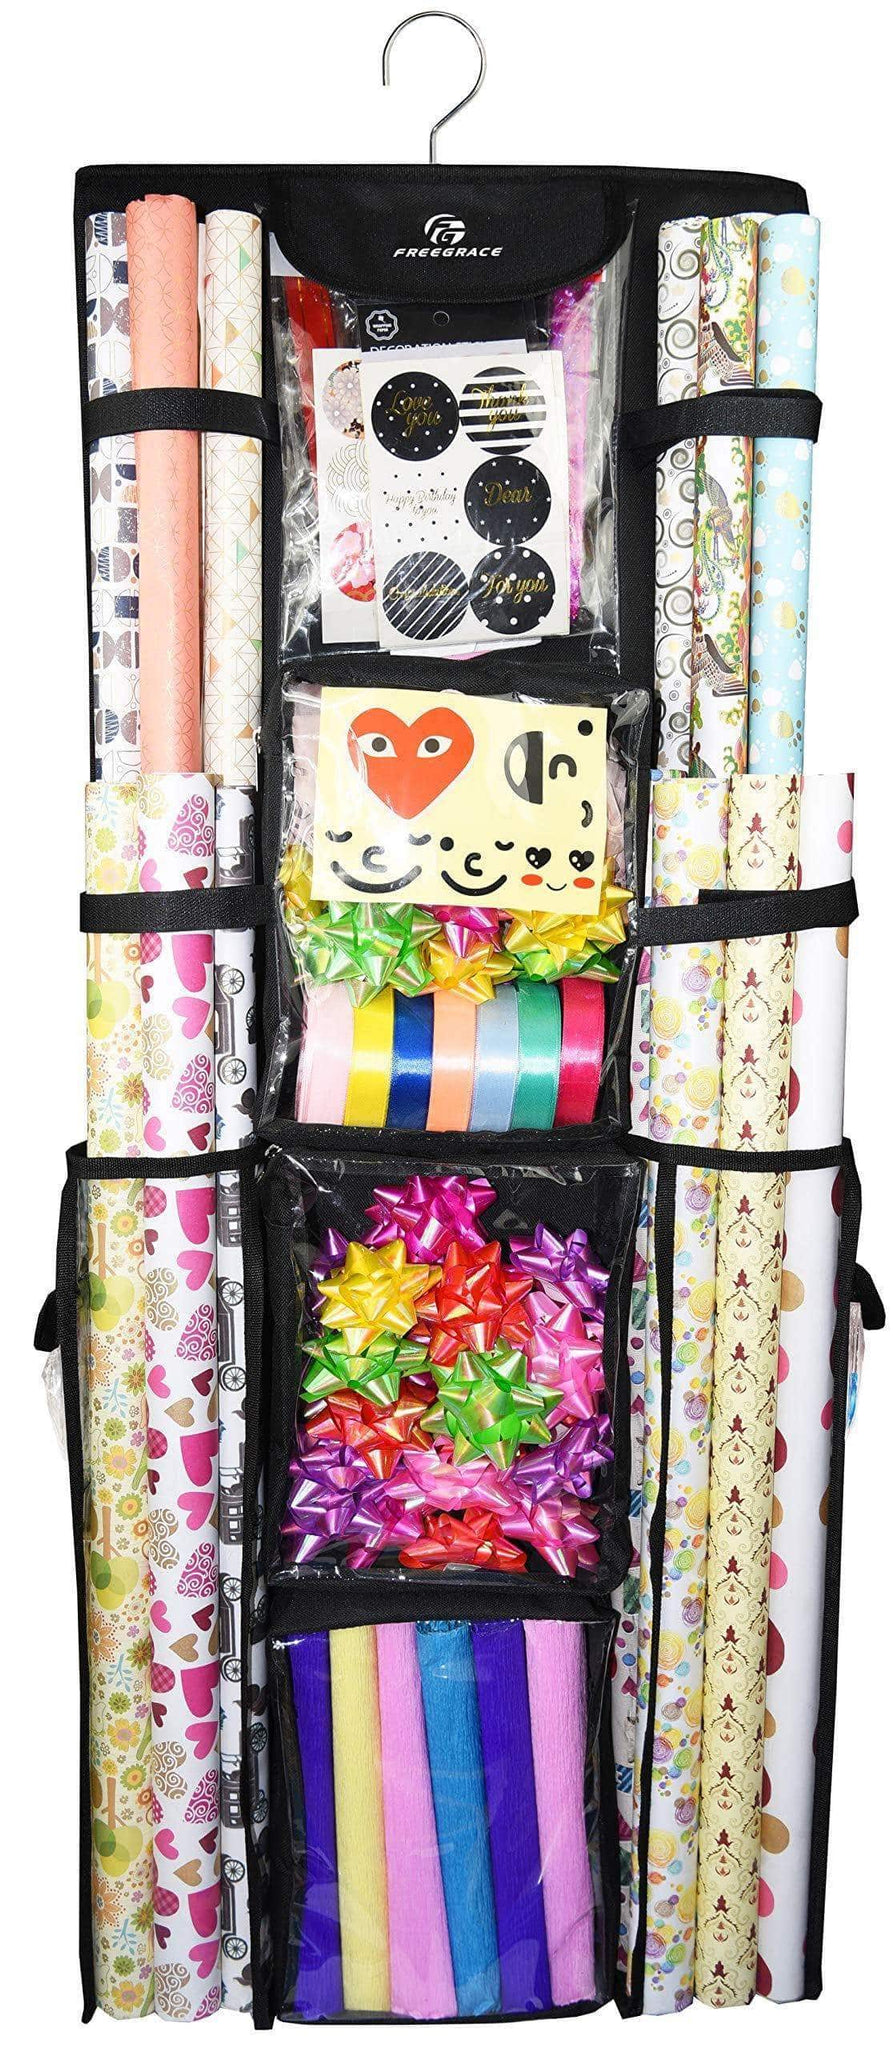 Kitchen freegrace double sided hanging gift wrap organizer large 16 x 41 wrapping paper rolls storage bag tearproof space saving closet gift bag organization solution black